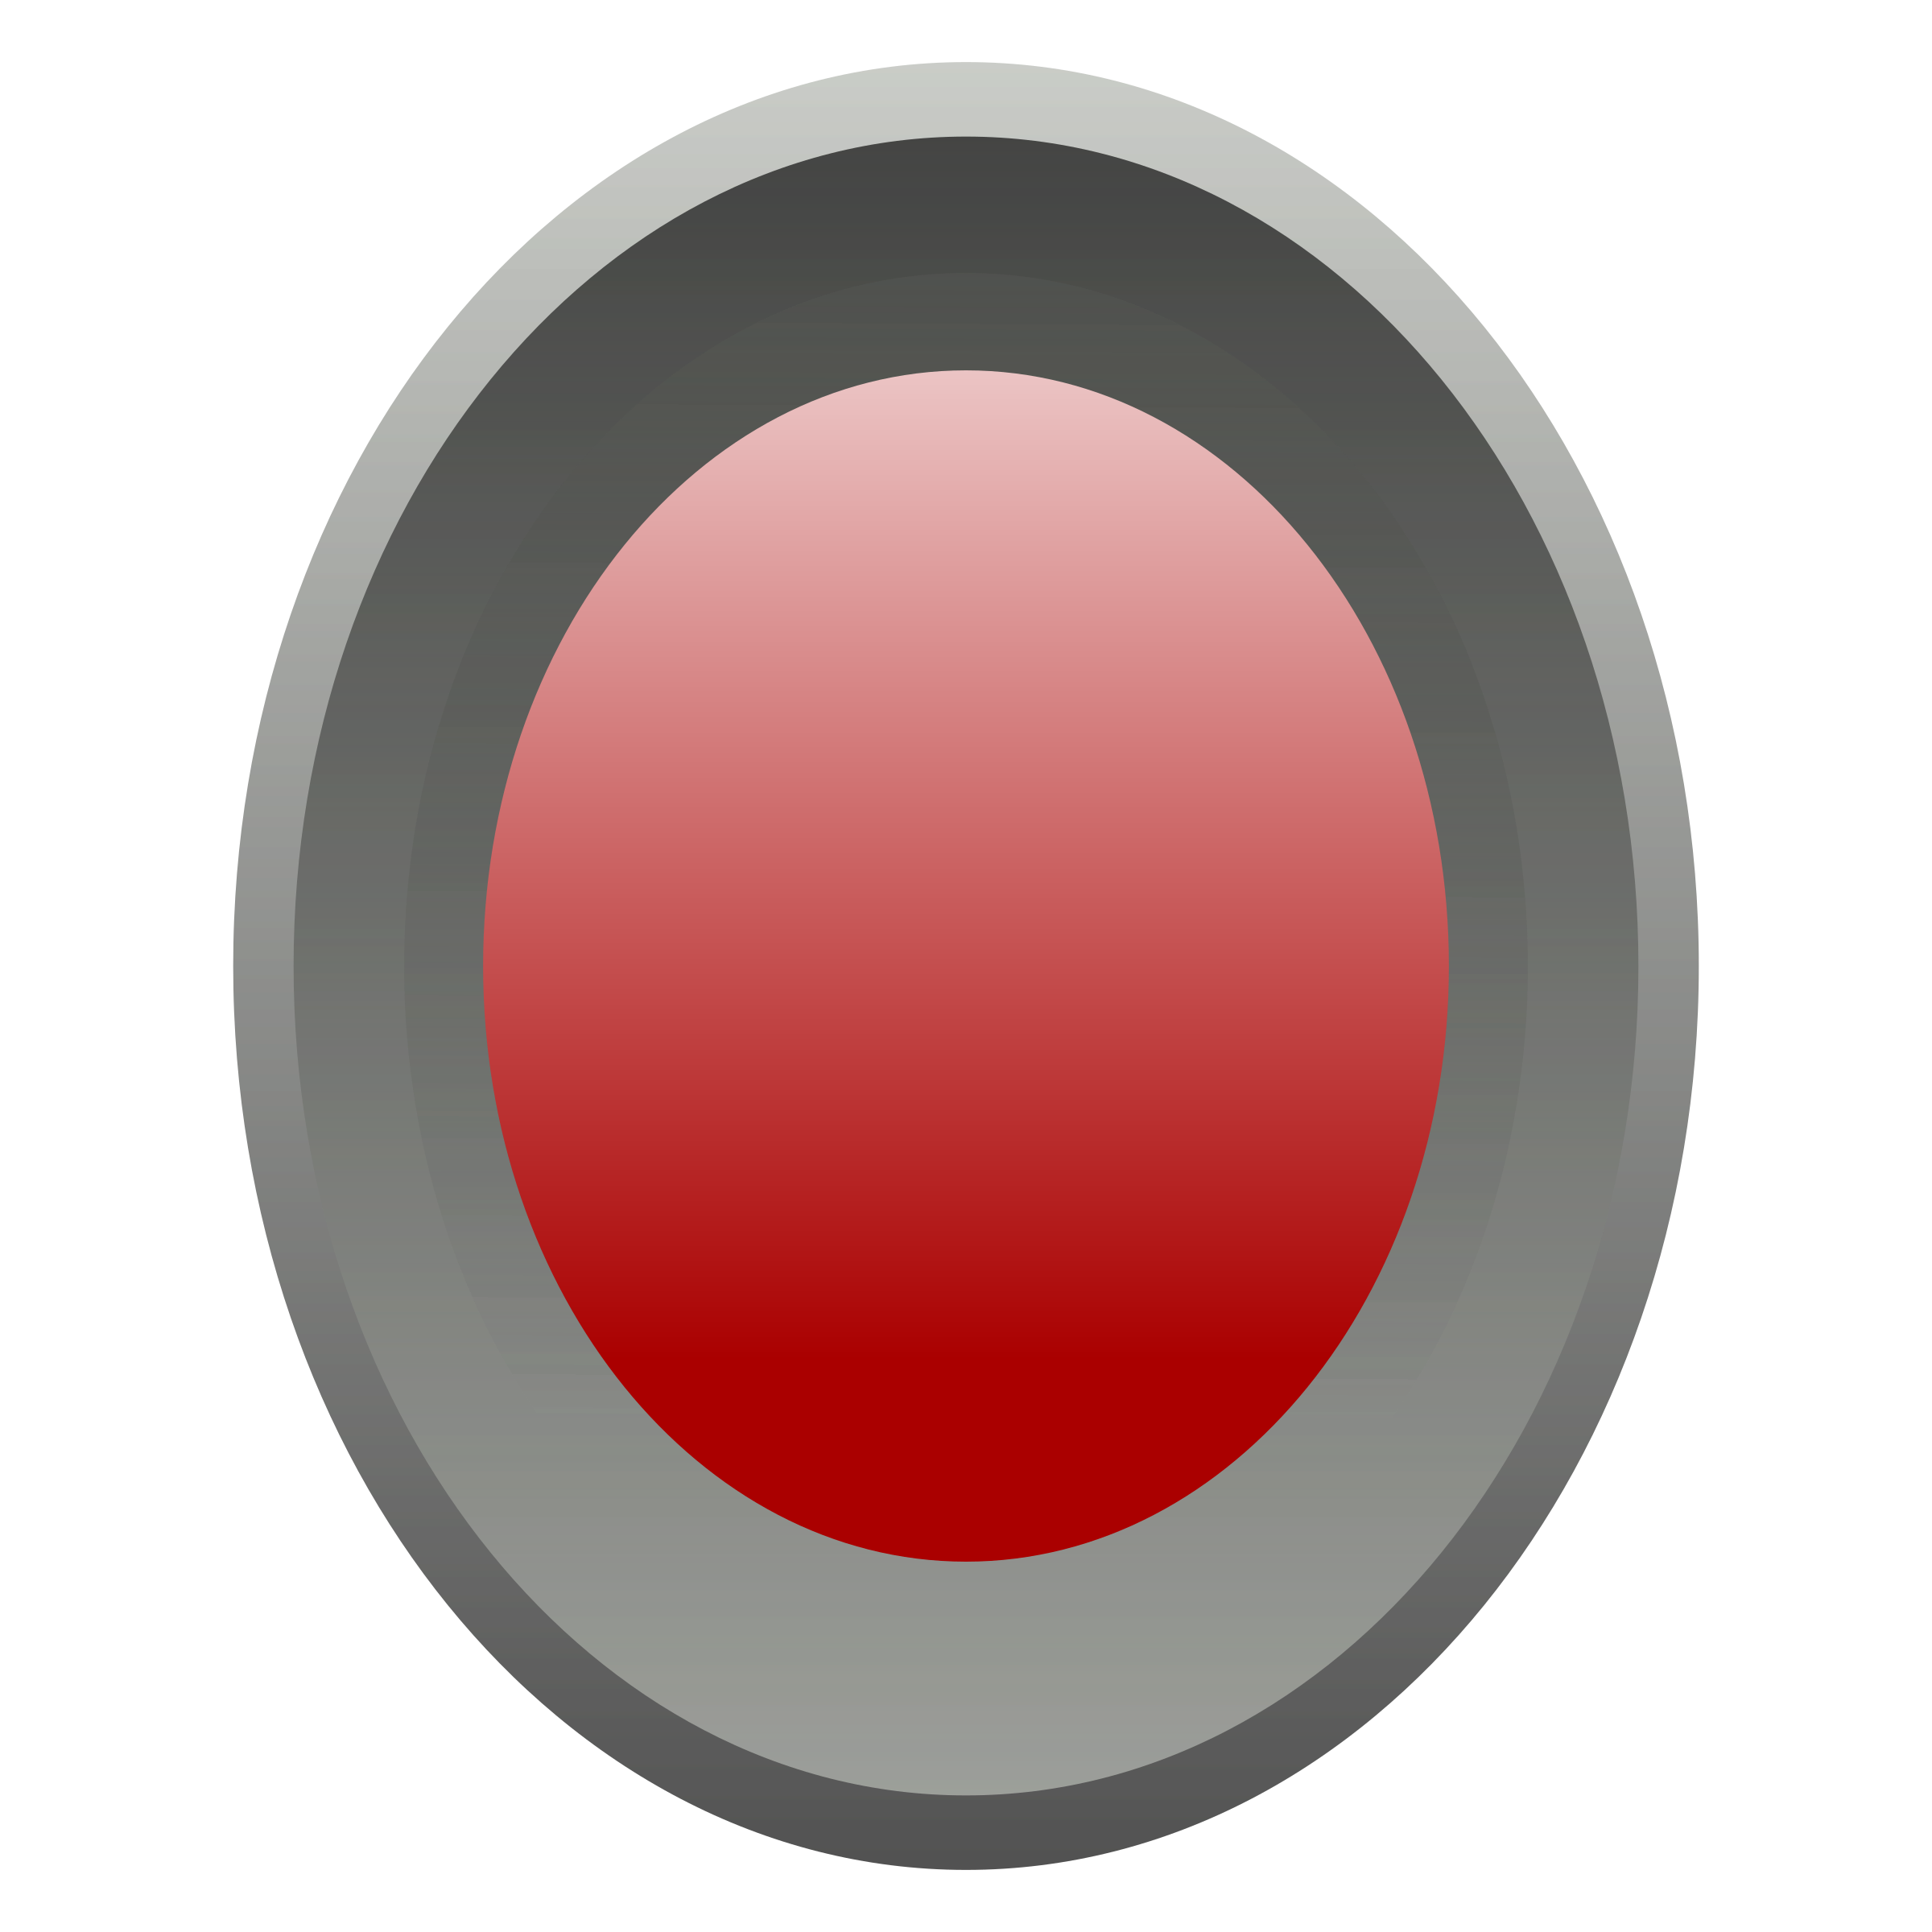 Gray and red button by finao123